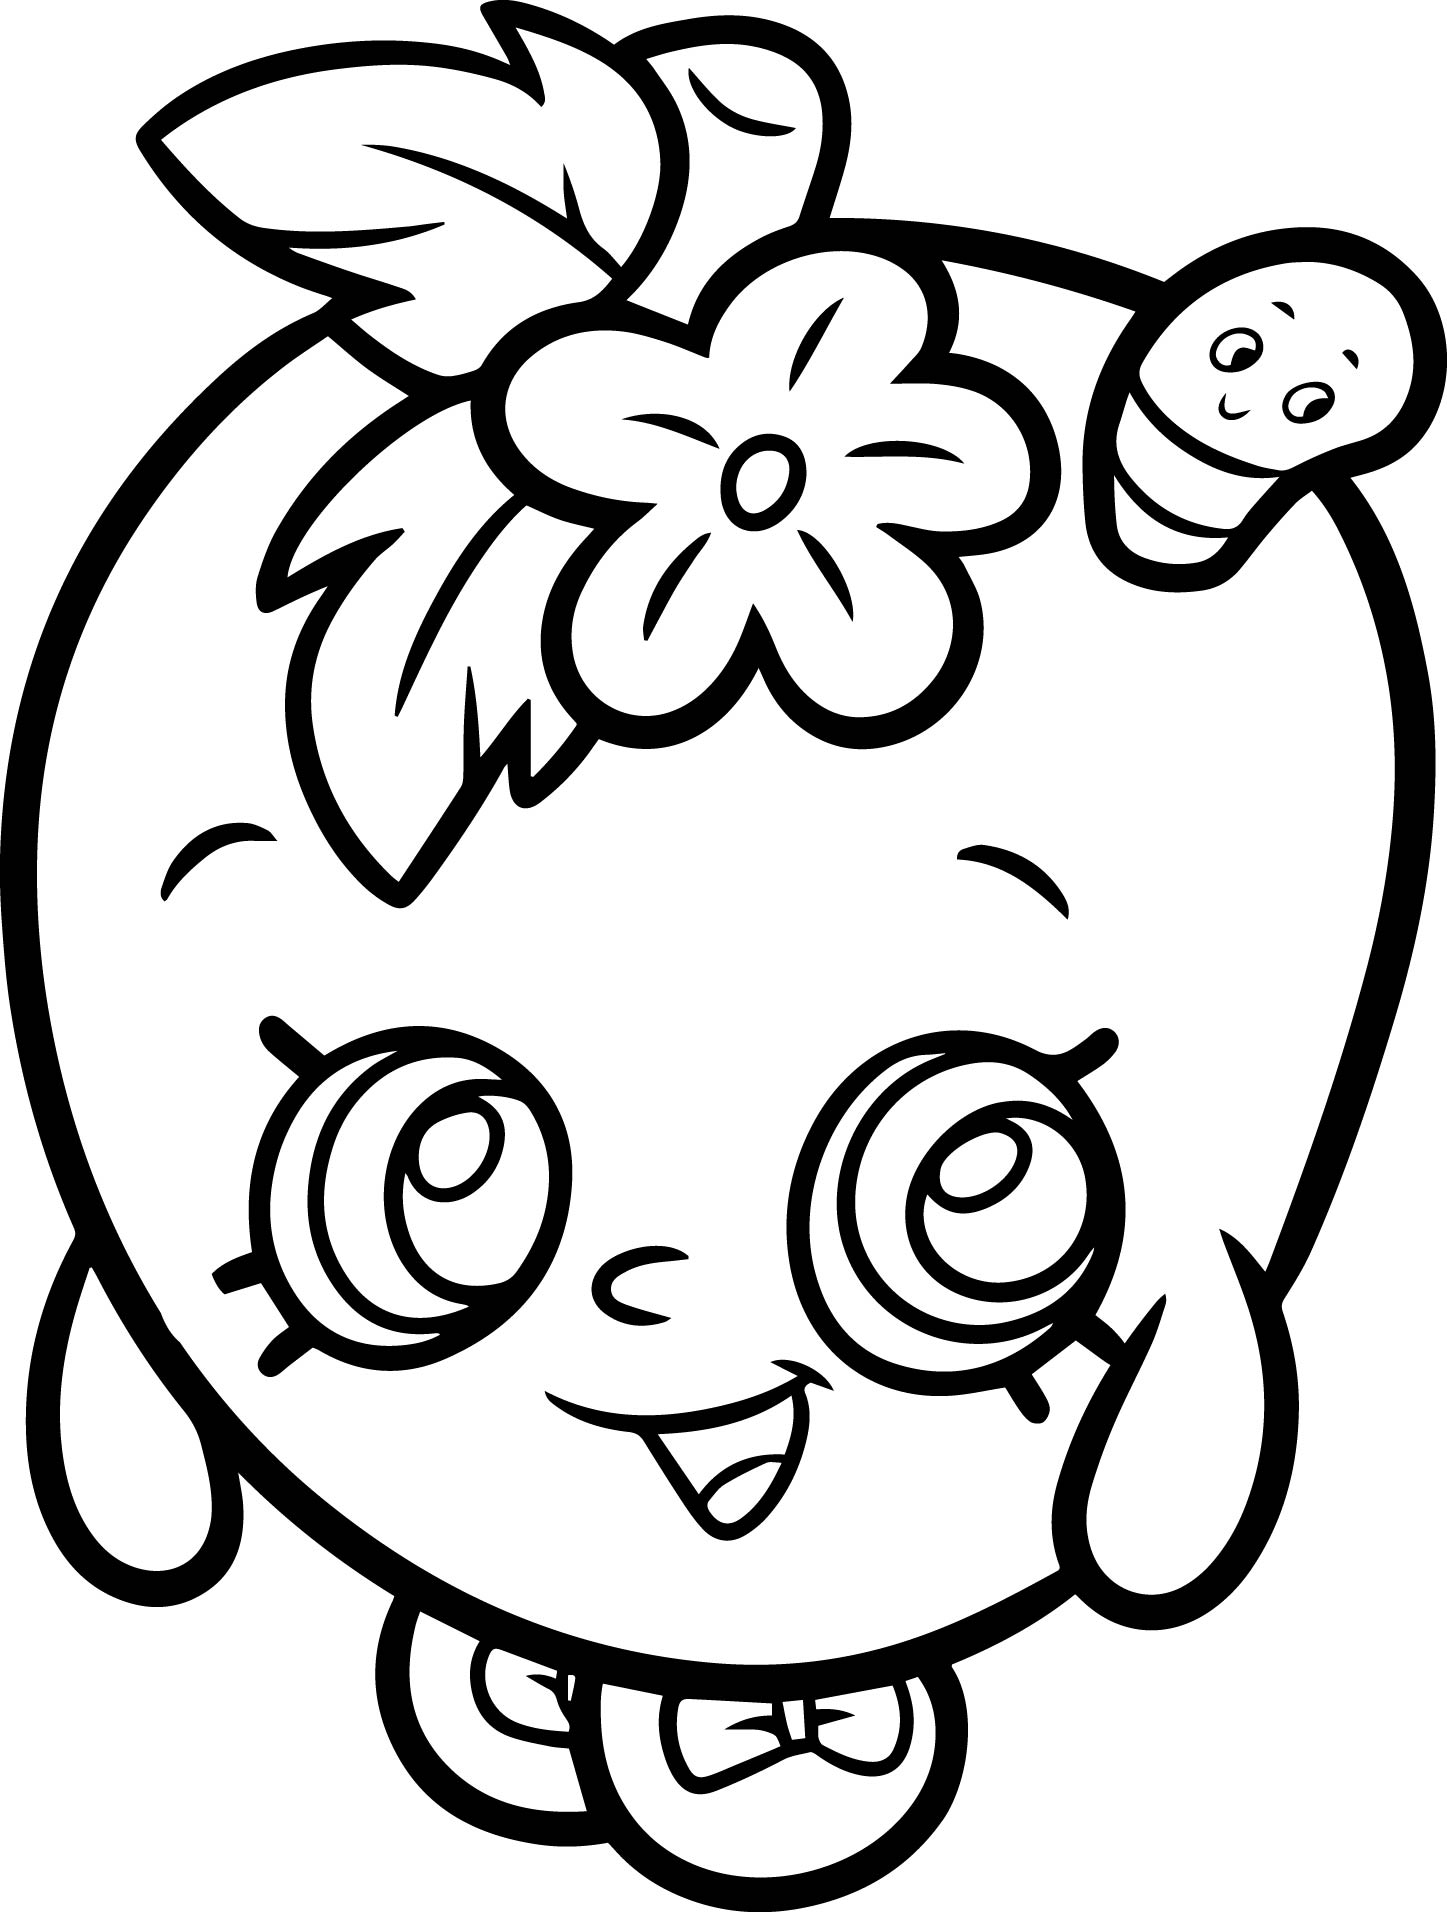 Shopkins color sheets - Shopkins Coloring Pages To Color Shopkins Coloring Pages Big Apple Blossom From Shopkins Coloring Page